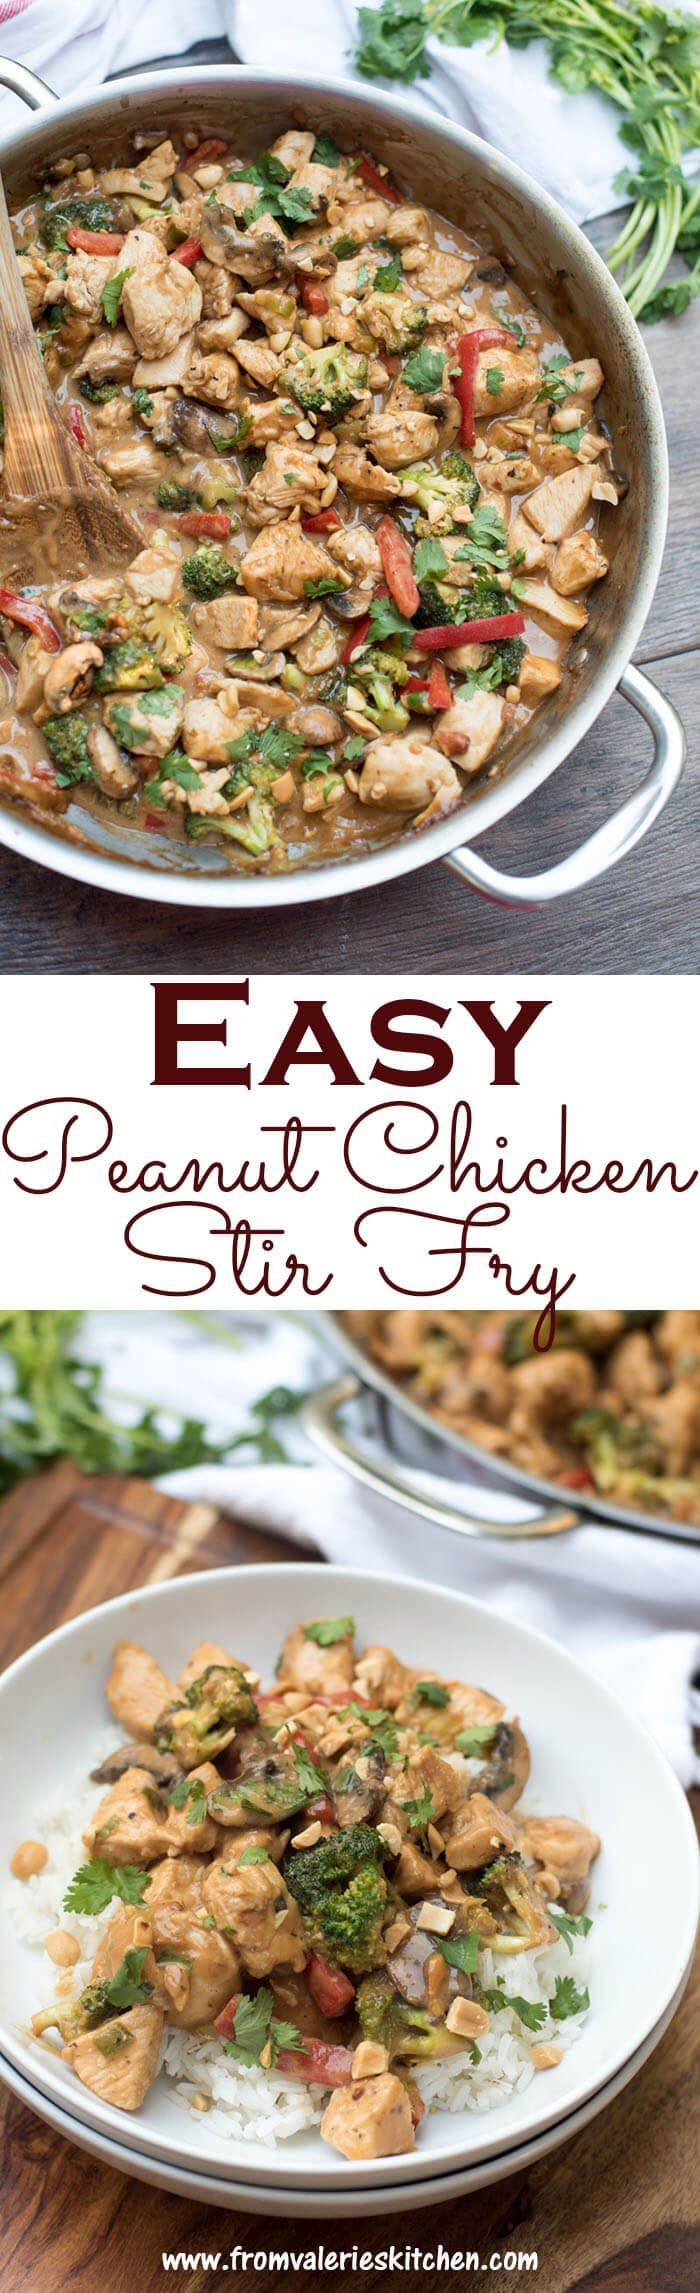 This Easy Peanut Chicken Stir Fry is loaded with chicken, vegetables, and the dreamy, irresistible flavor of peanut sauce that we crave so much! ~ http://www.fromvalerieskitchen.com